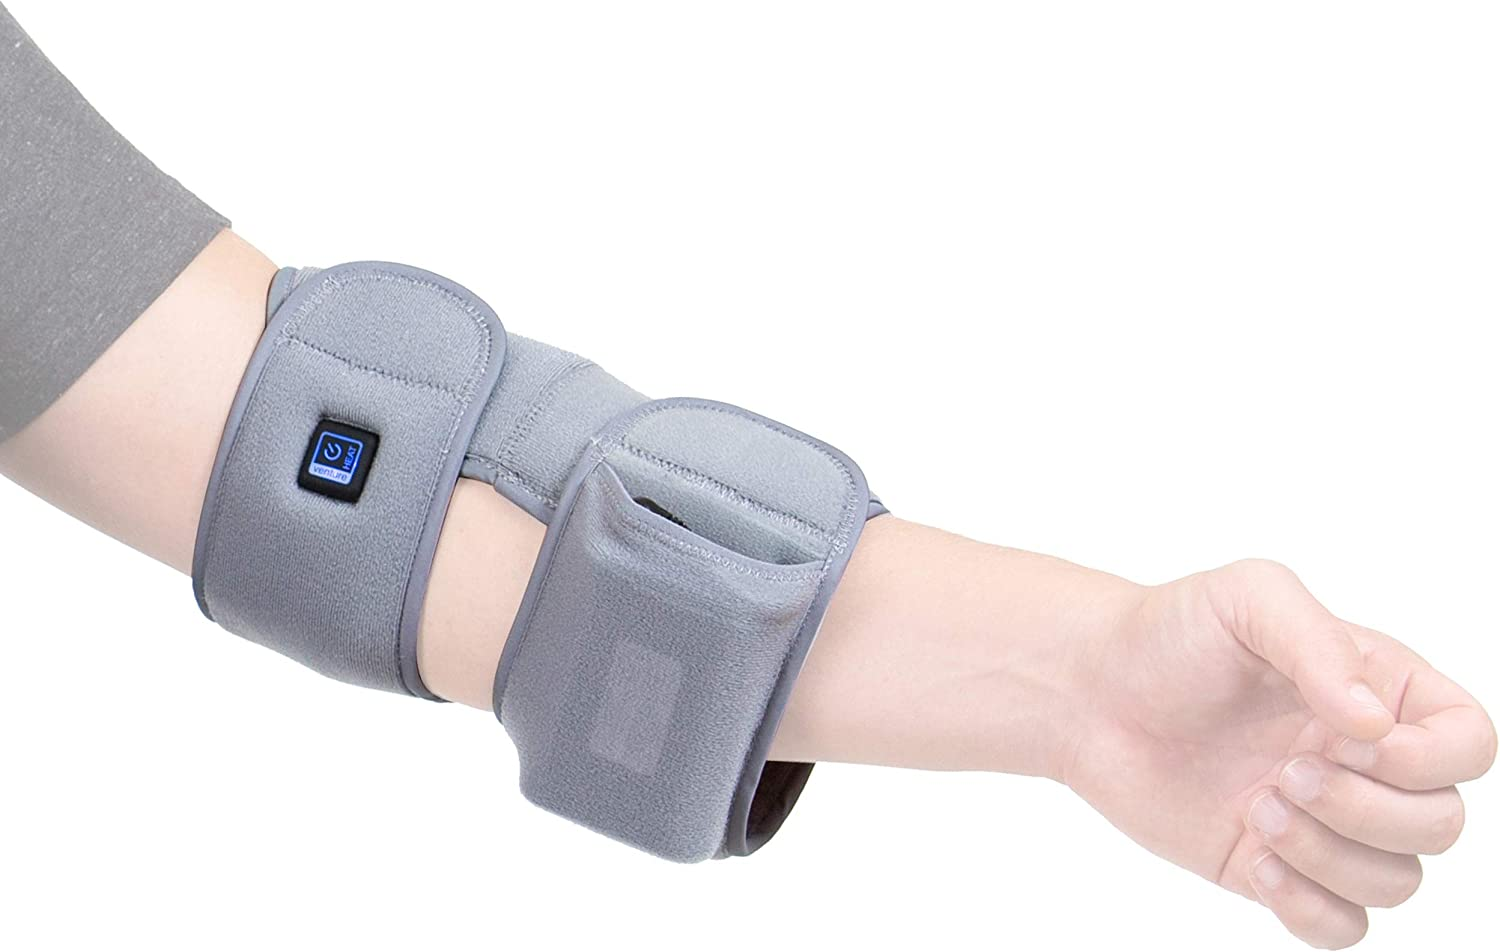 Venture Heat Infrared Elbow Heating Pad for Pain Relief Recovery - Heated Wrap Support Brace for Tendonitis, Arthritis, Join Pain Injury, Tennis Elbow